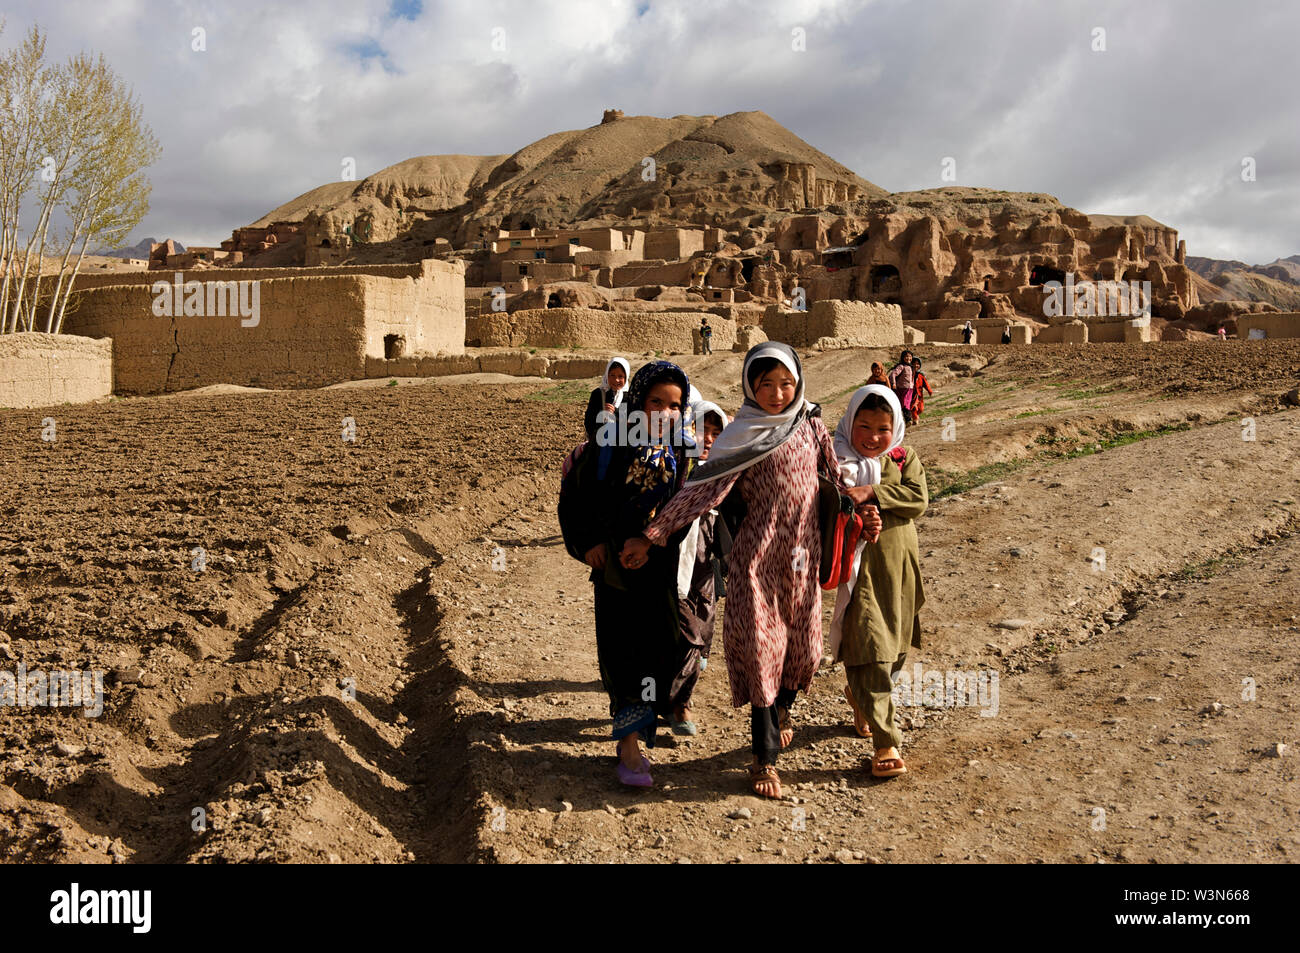 A group of children on their way to school from their village on the hills of Bamyan, in Bamyan province, Afghanistan. May 11, 2009. - Stock Image